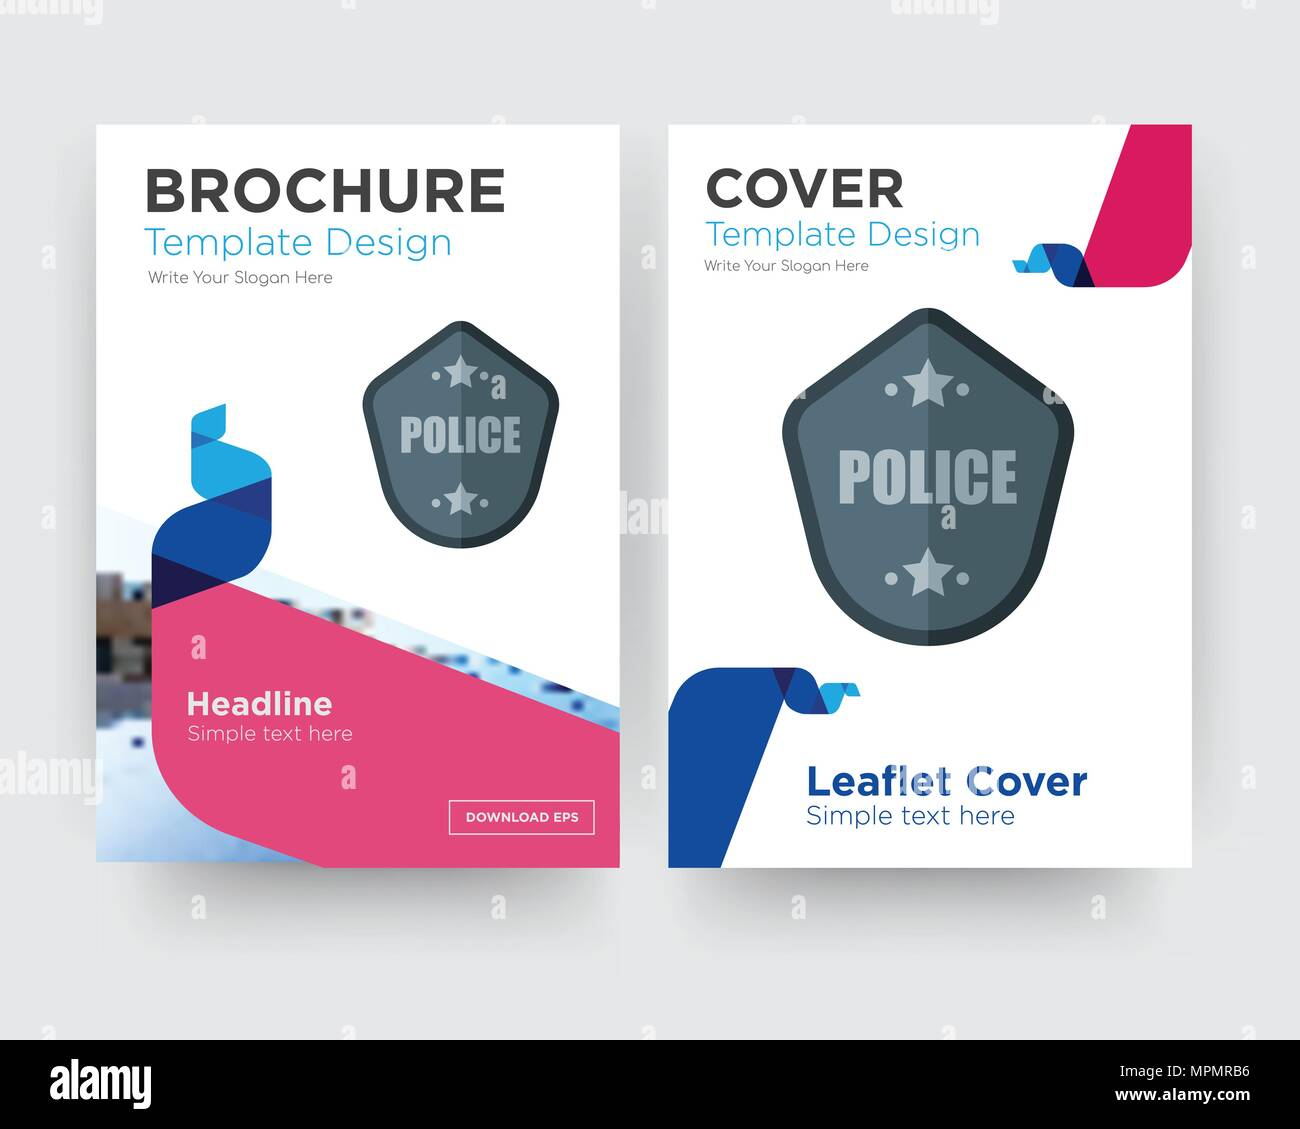 Police Badge Brochure Flyer Design Template With Abstract Photo